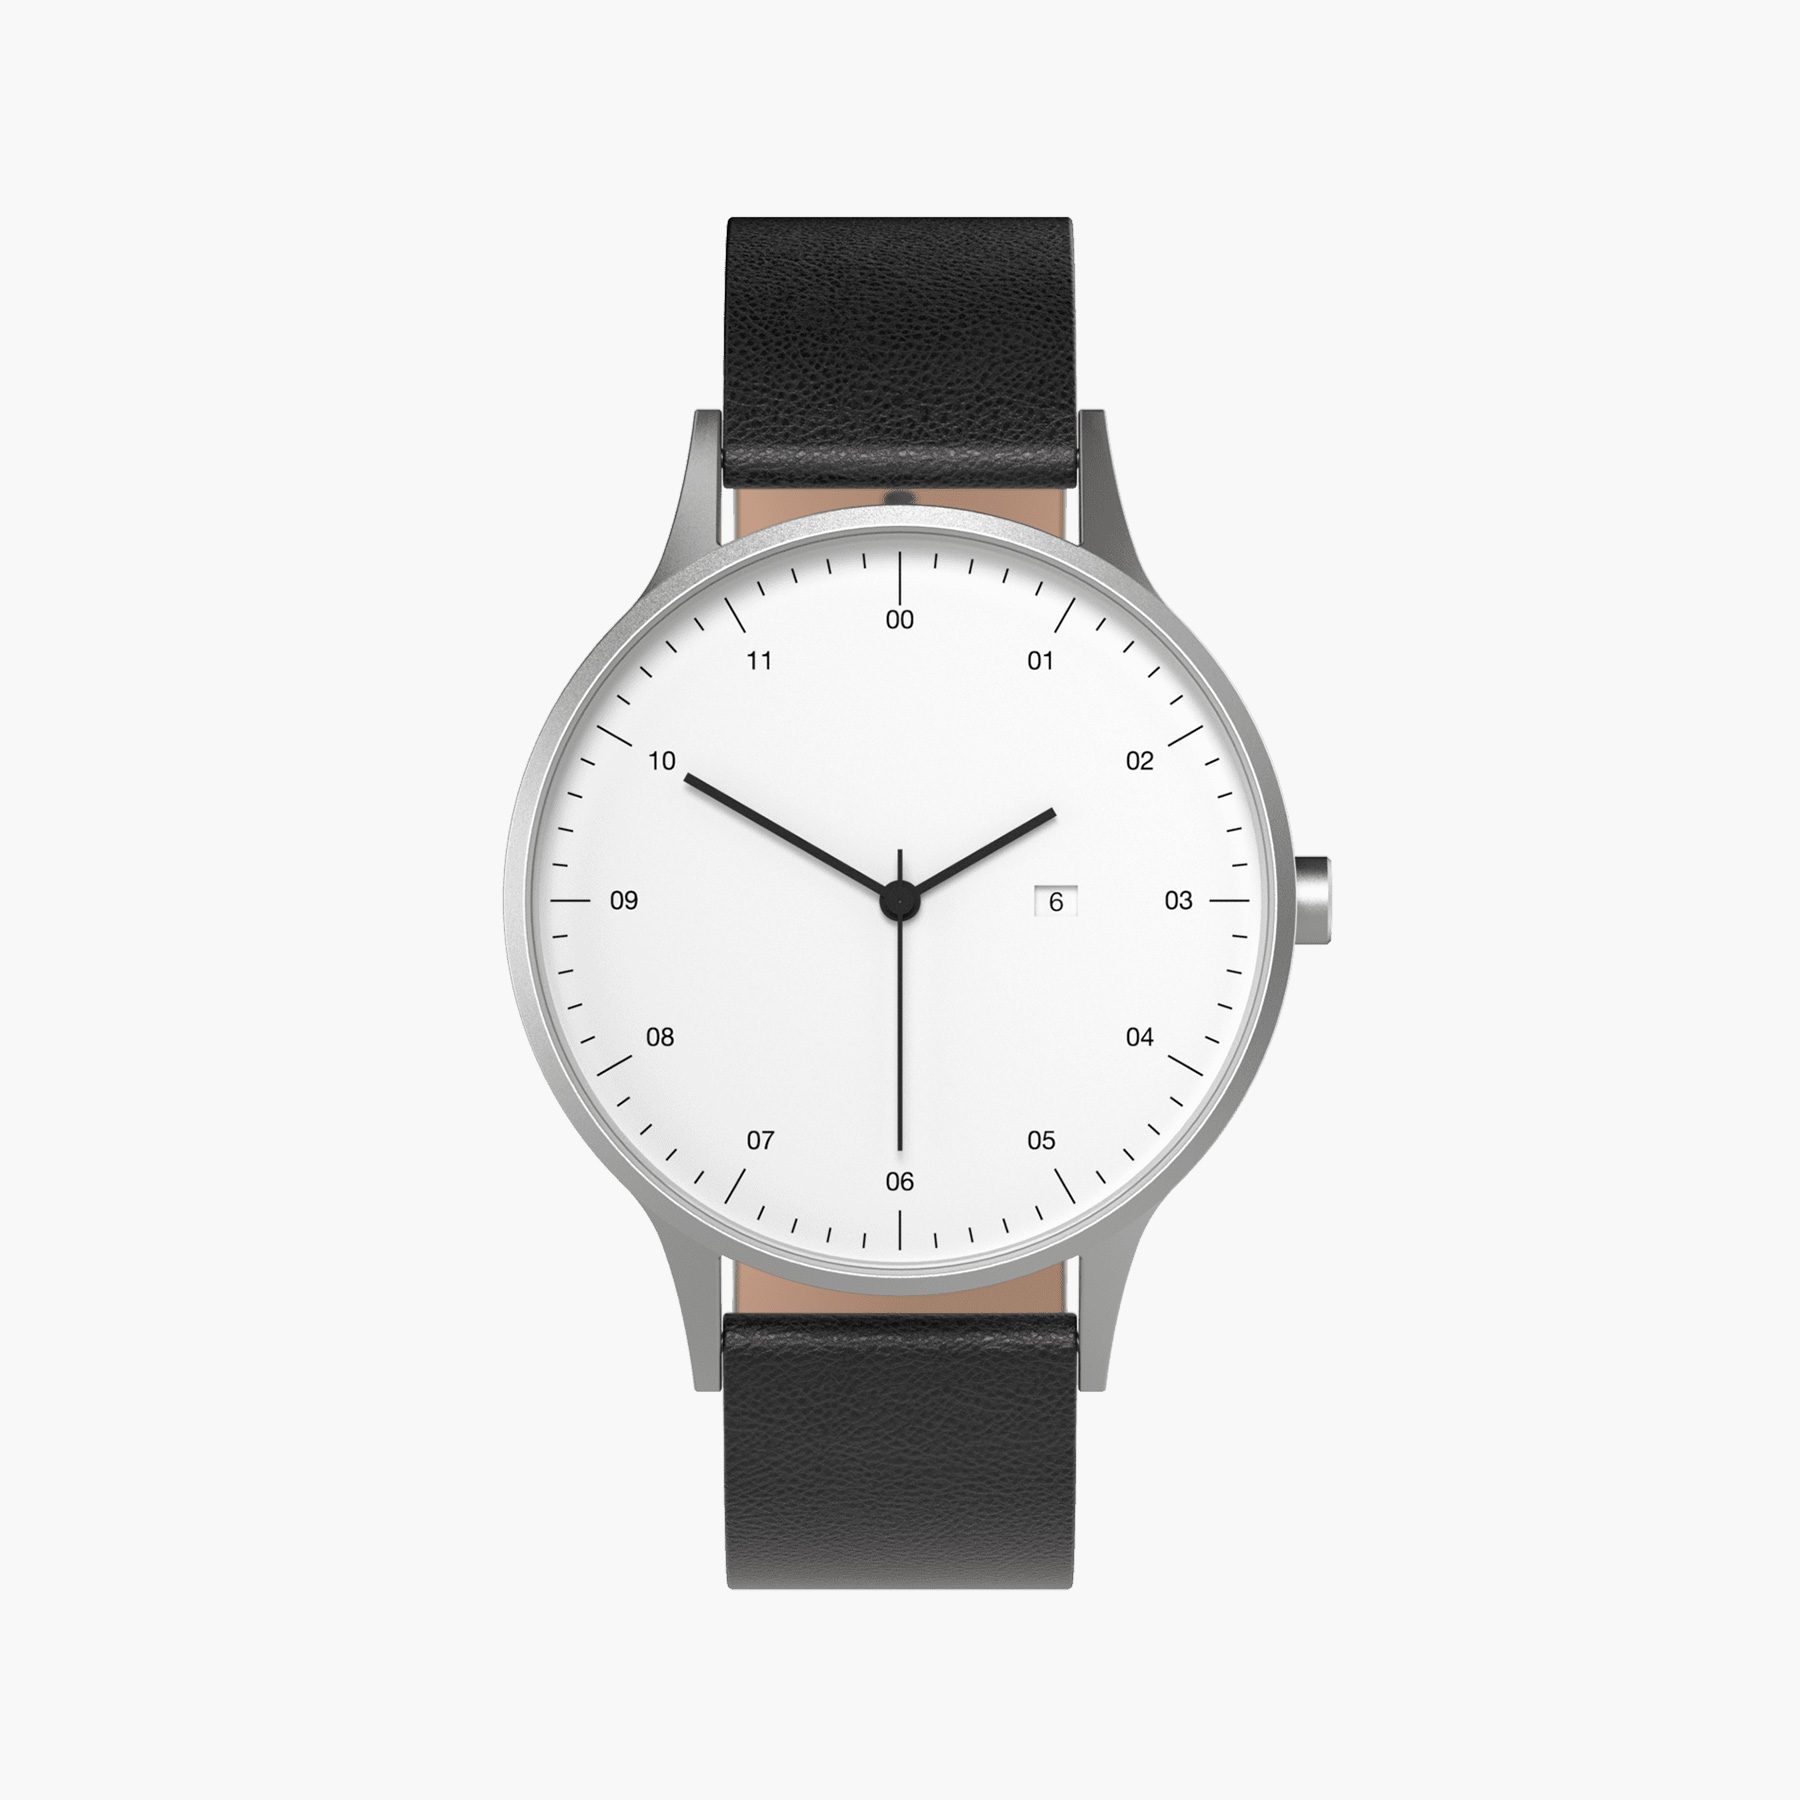 Instrmnt Applied Design (I–AD) Everyday Watch